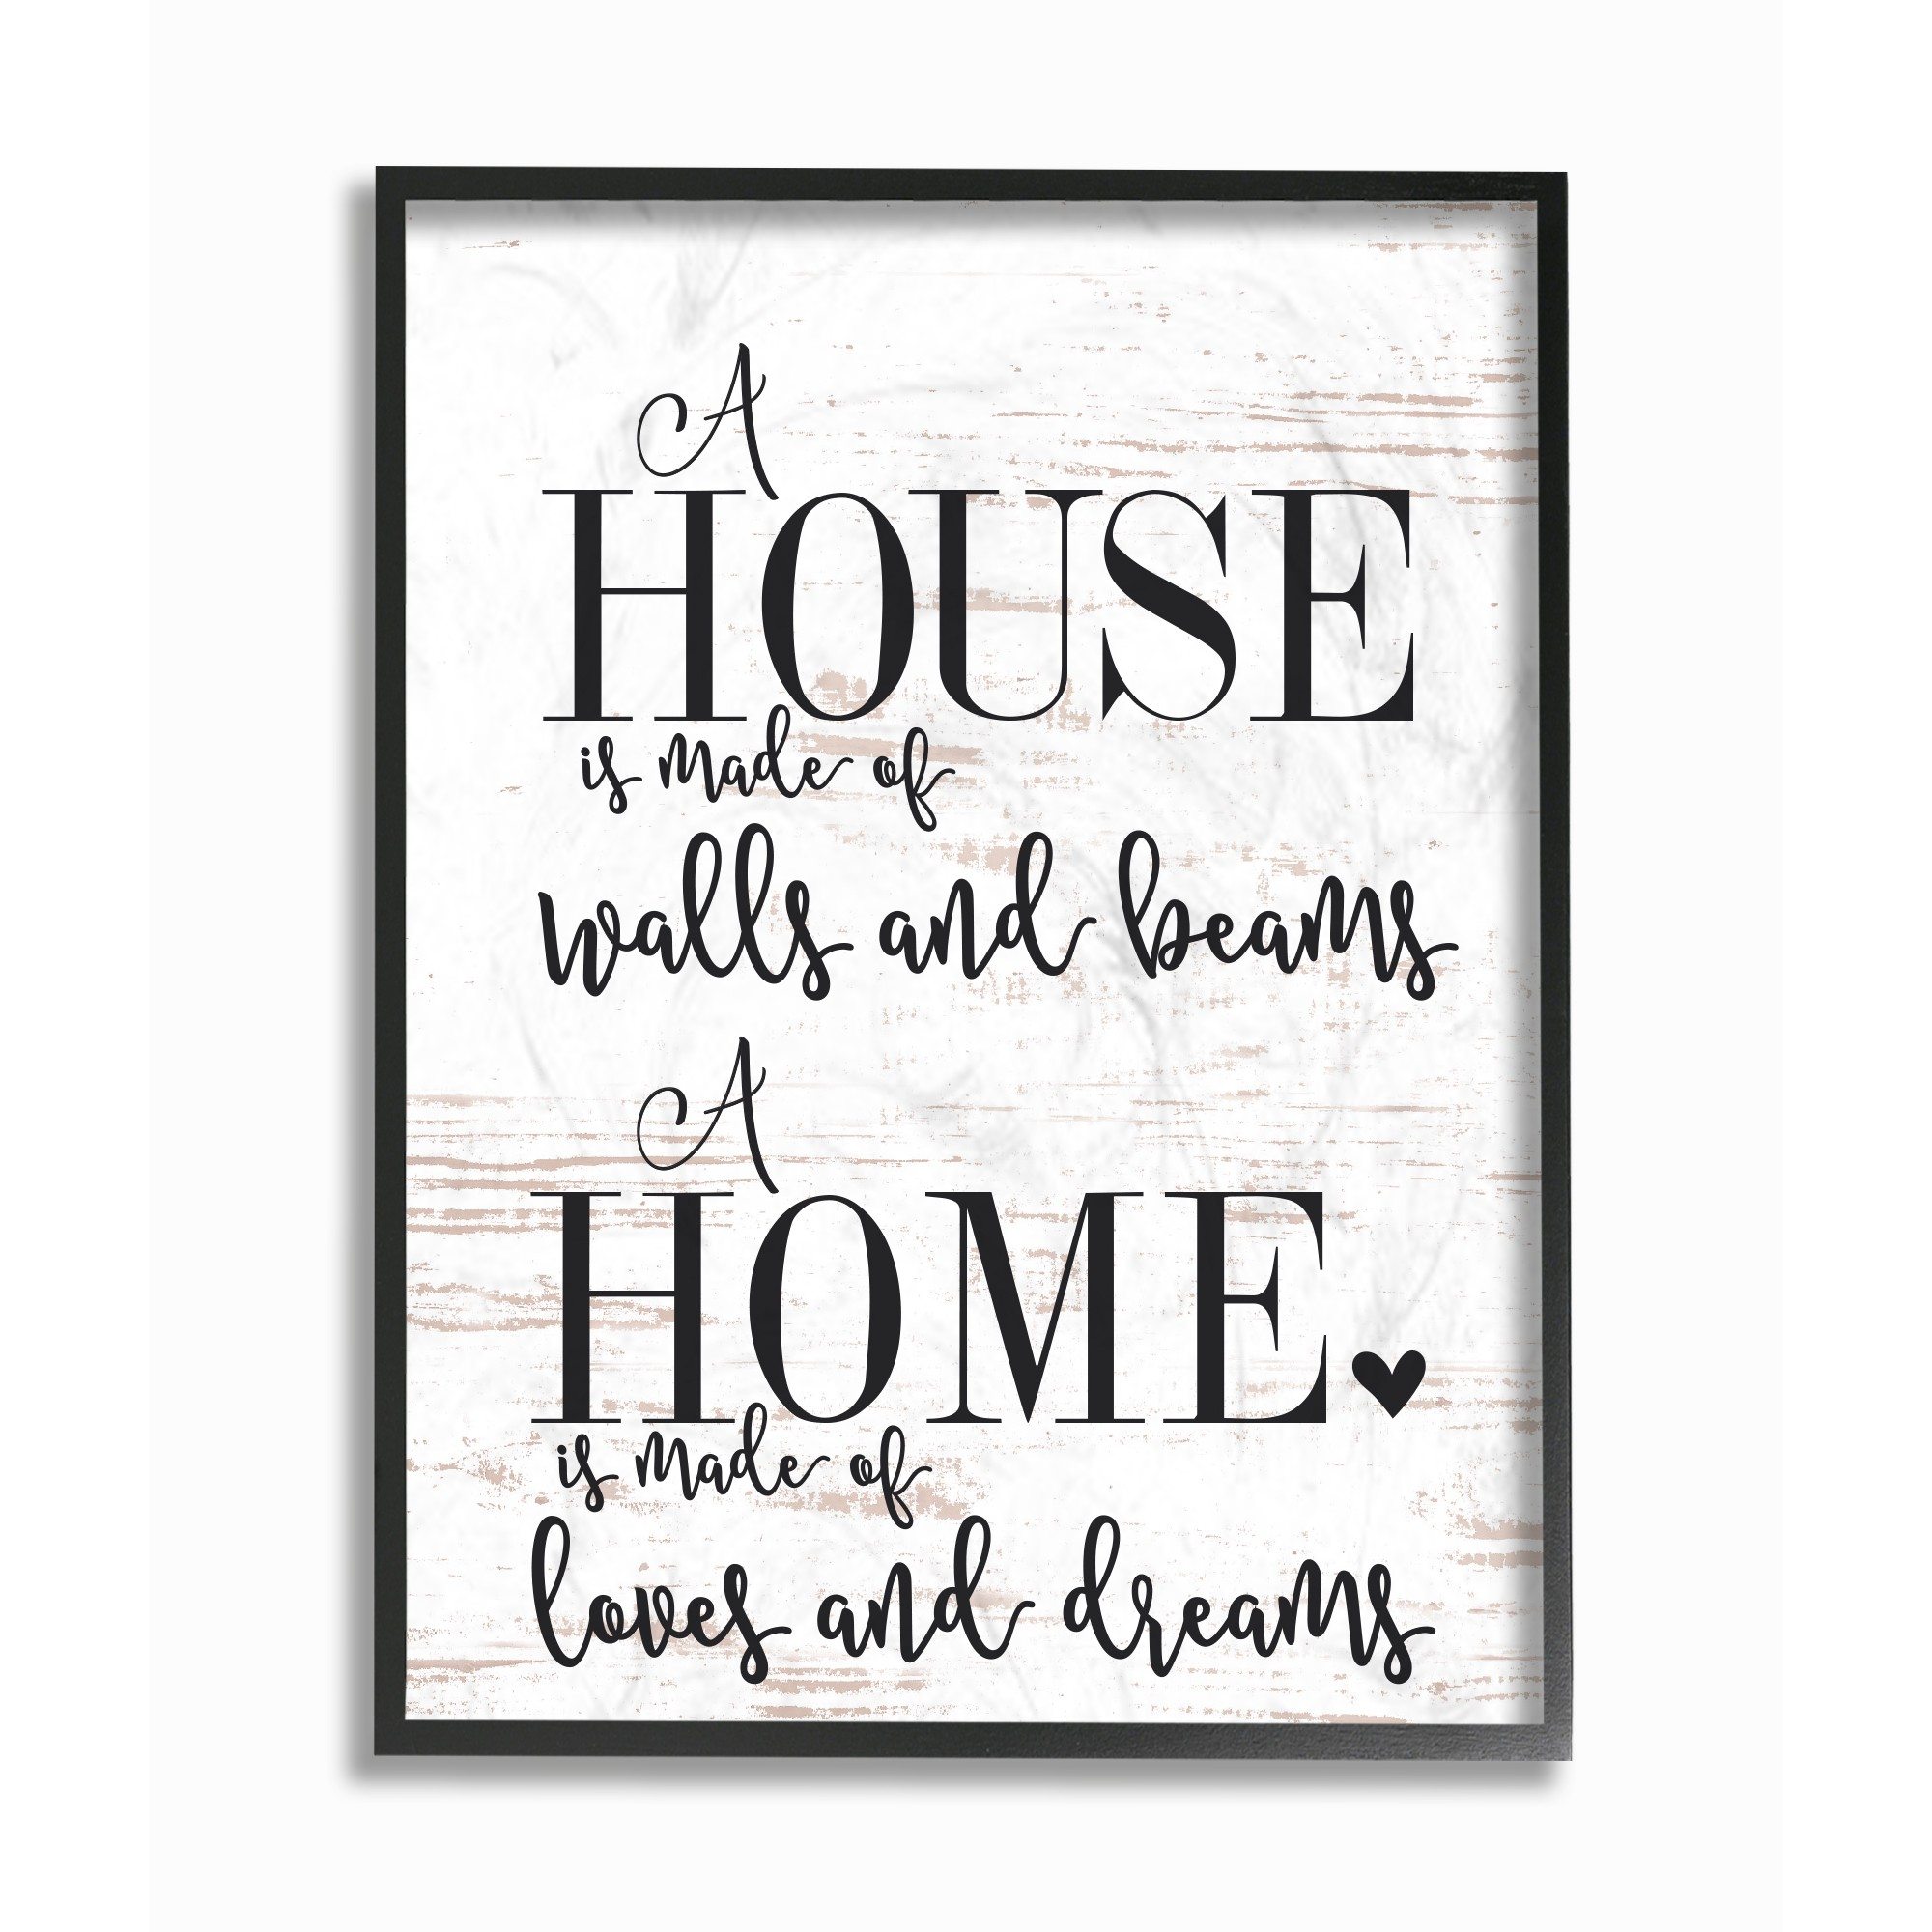 The Stupell Home Decor Collection Home Loves And Dreams Oversized Framed Giclee Texturized... by Stupell Industries